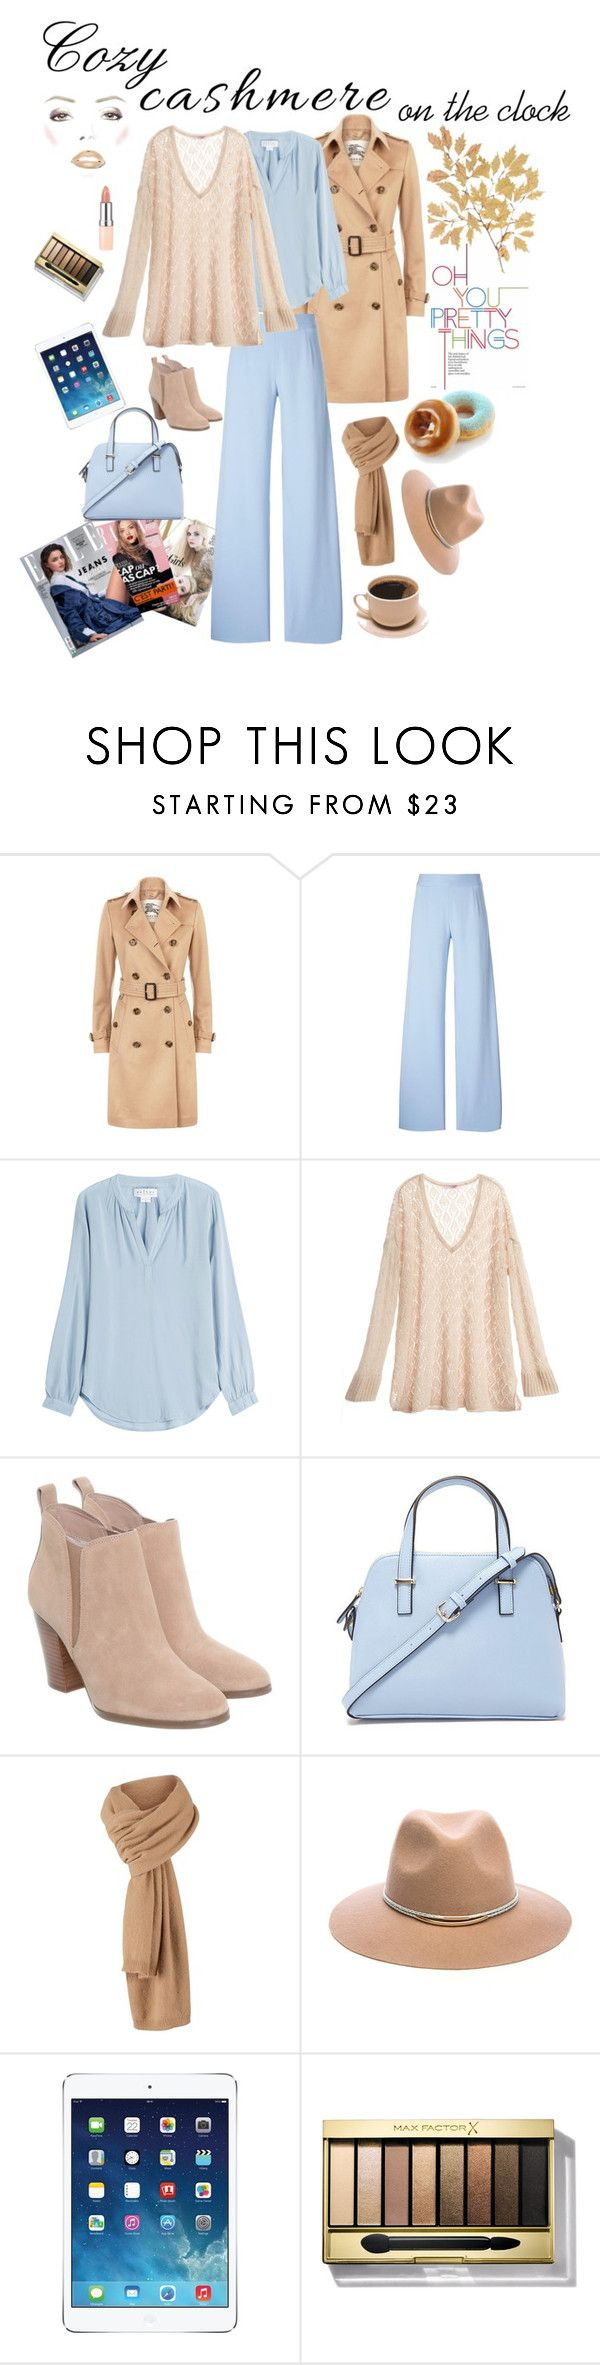 """Cozy cashmere on the clock"" by marina-bencun ❤ liked on Polyvore featuring Burberry, Christopher Kane, Velvet, Calypso St. Barth, Michael Kors, Forever 21, Michael Stars, Kerr®, Apple and Max Factor"